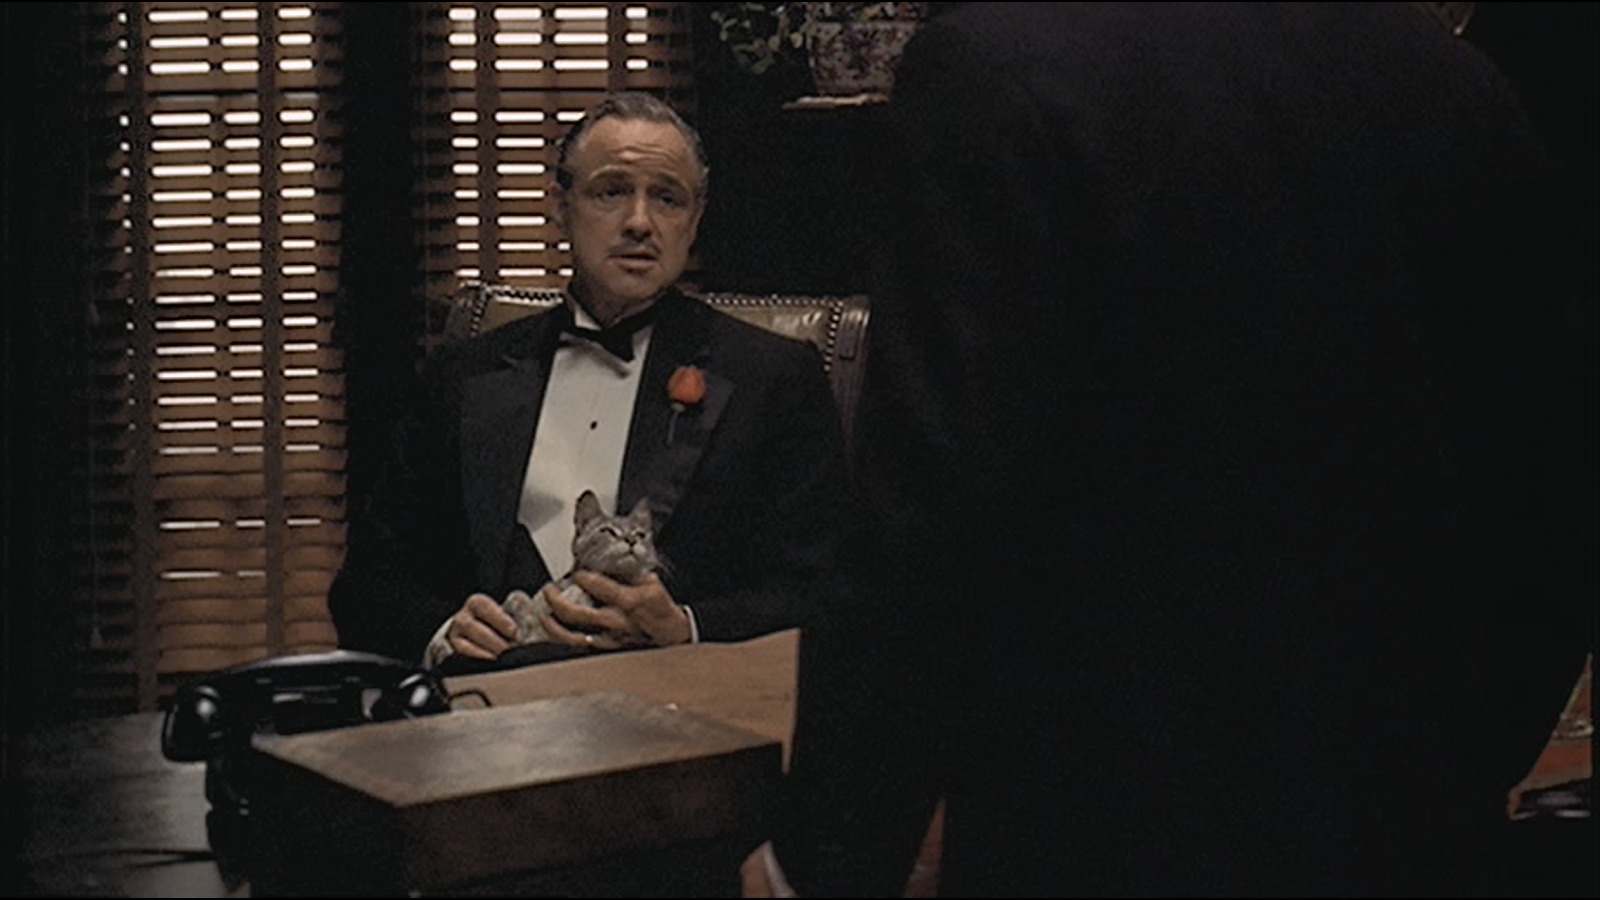 Minute 5: The Godfather-That Don Cat - Minute five is all about the cat. How did the now iconic cat end up in the lap of Marlon Brando? How does it tie into the character of Don Corleone? And does it have a name? Amanda and Stephen tackle these questions and more.